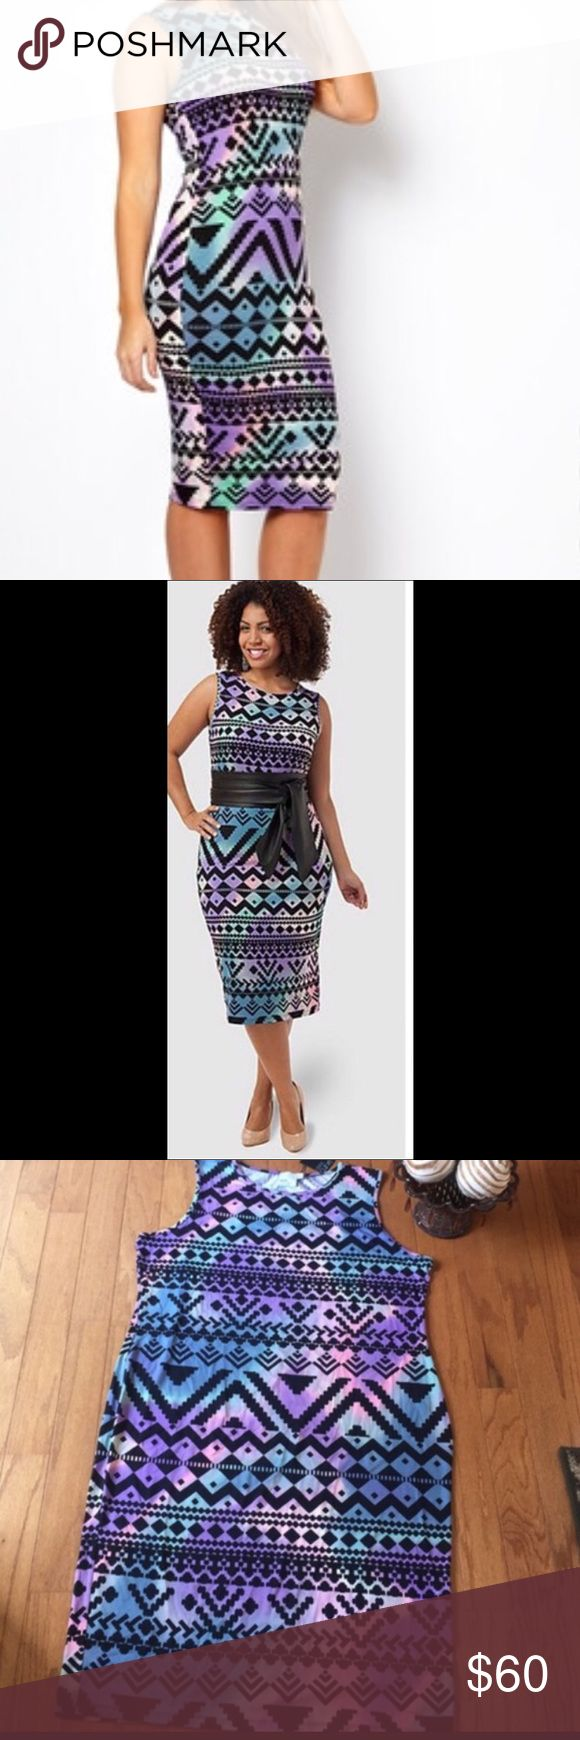 🔮🥂ASOS AZTEC PRINTED DRESS🥂🔮 Form fitting midi-length dress in all over Aztec print.  The daring Aztec print is softened by the warm pastel colors. Pair this bold dress with a tailored black blazer and pumps for a night out. Belt the dress to highlight your waist and break up the print and create an hourglass silhouette.    Belt not included 46 inches flat.  Fabric Viscose / Elastane ASOS Dresses Midi